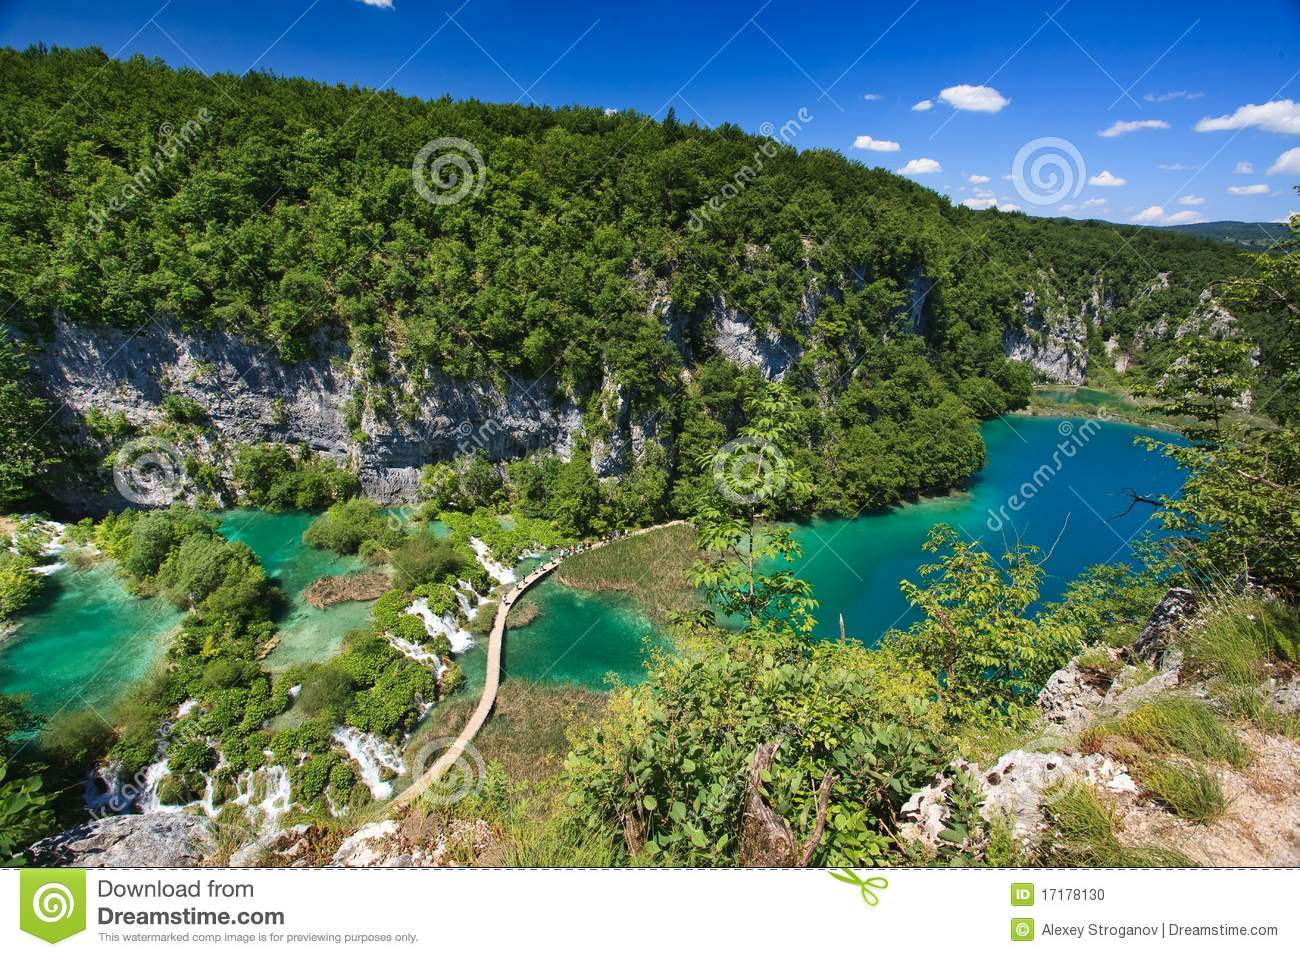 Plitvice Lakes National Park clipart #20, Download drawings